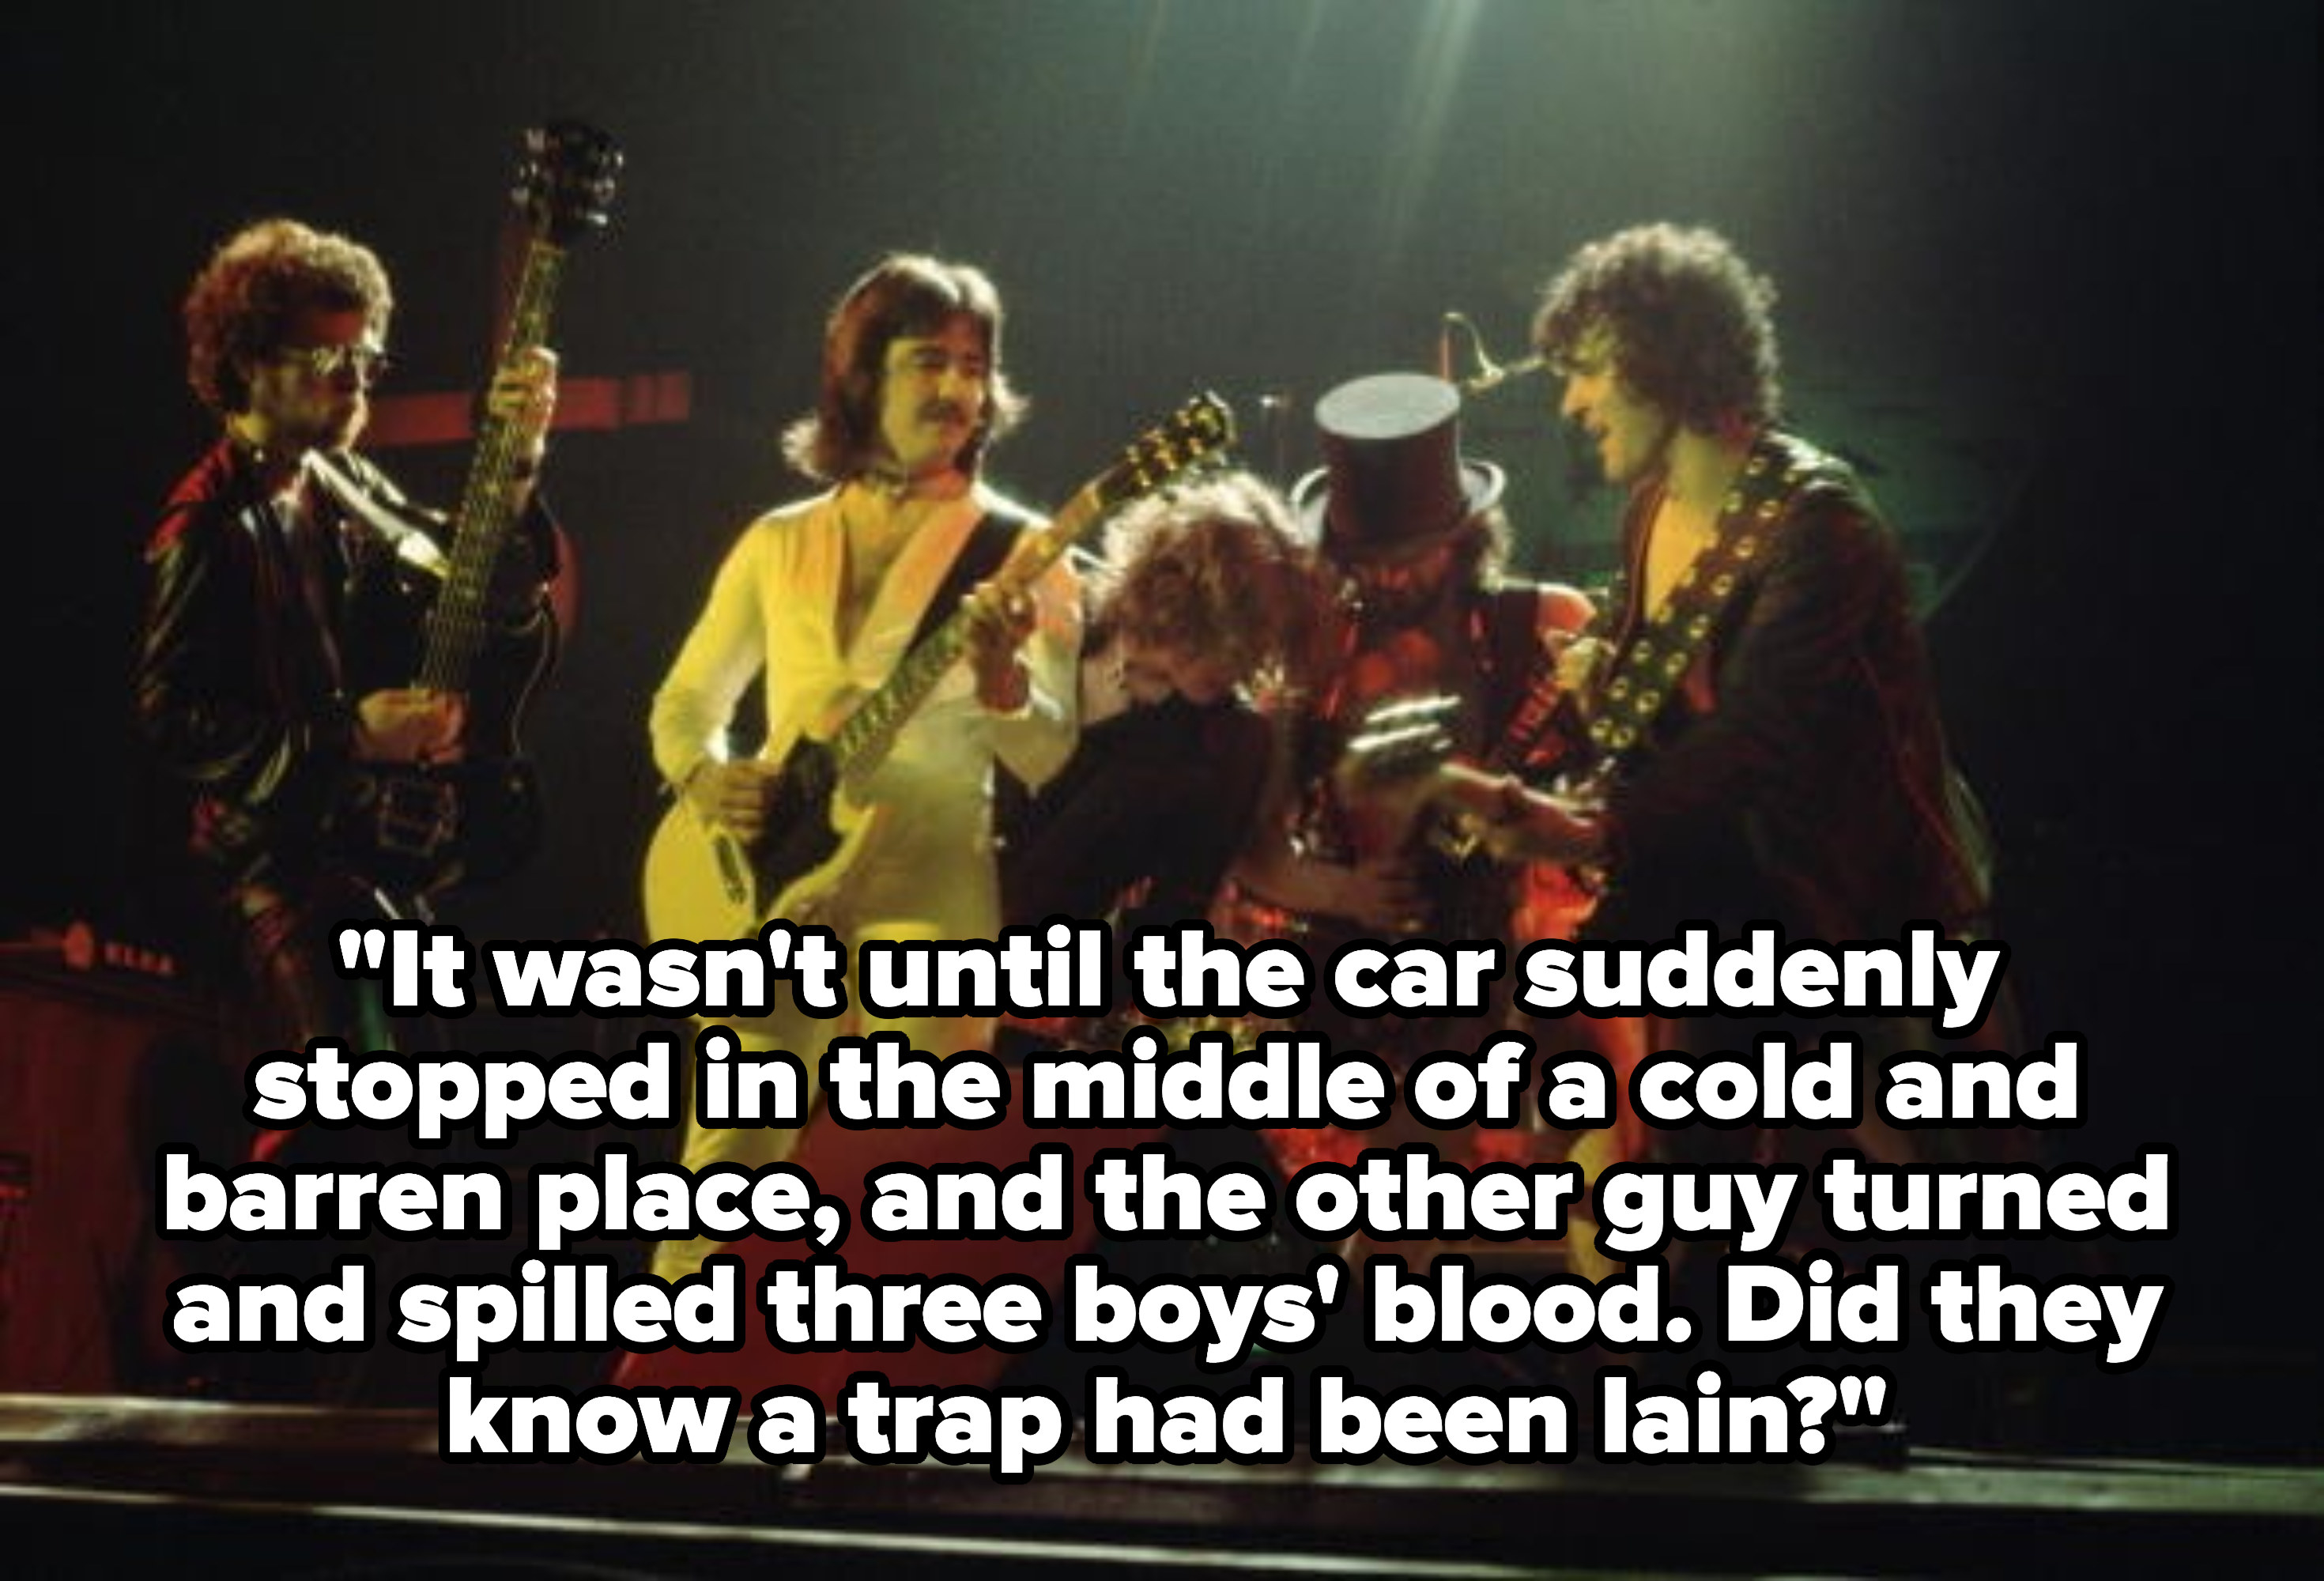 Lyrics: It wasn't until the car suddenly stopped in the middle of a cold and barren place, and the other guy turned and spilled three boys blood. Did they know a trap had been lain?